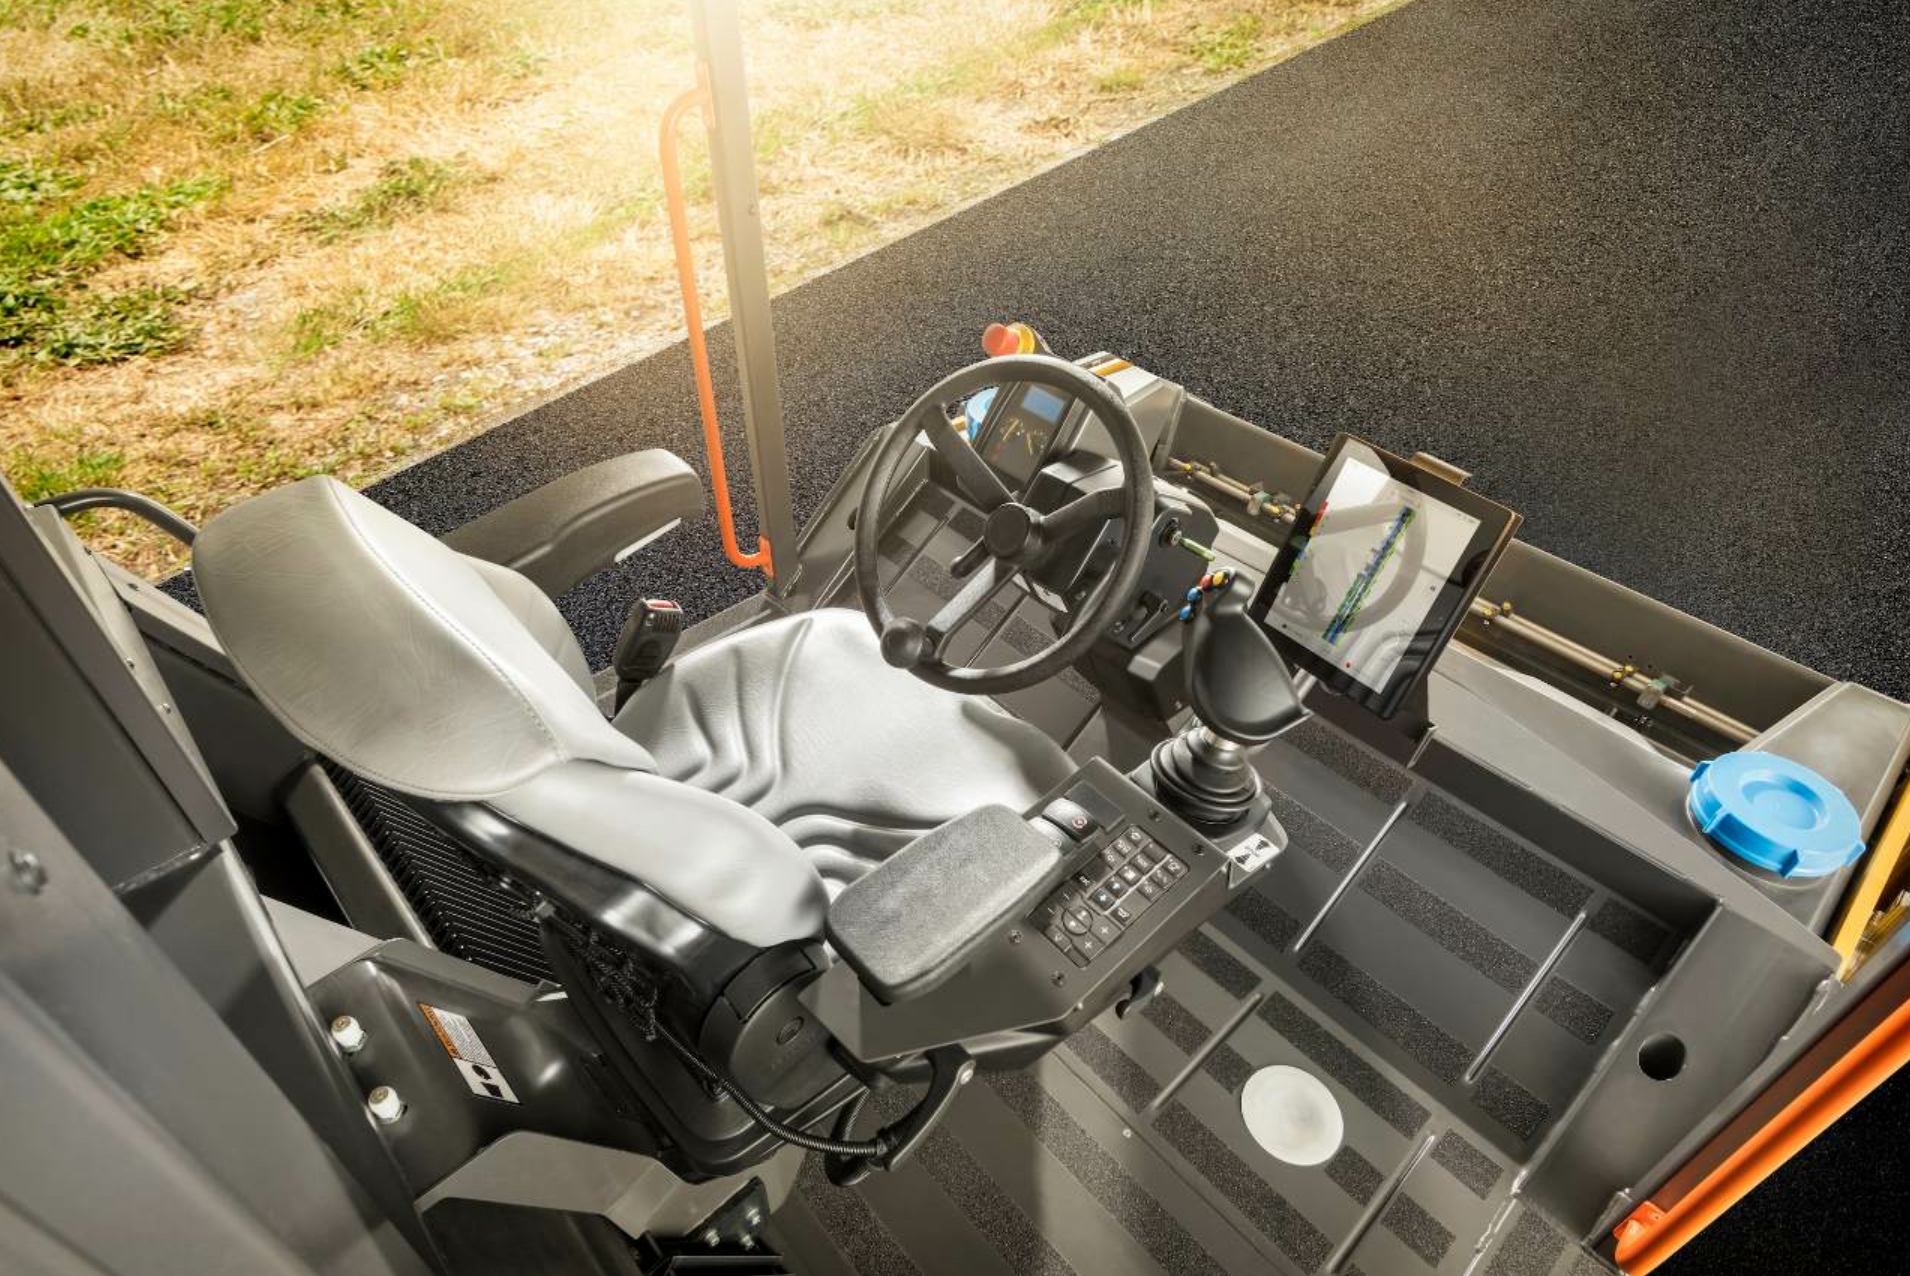 Volvo's Density Direct features an 8X10 touch screen display and uses a GPS to track roller passes. Photo courtesy Volvo Construction Equipment, Shippensburg, Pennsylvania.